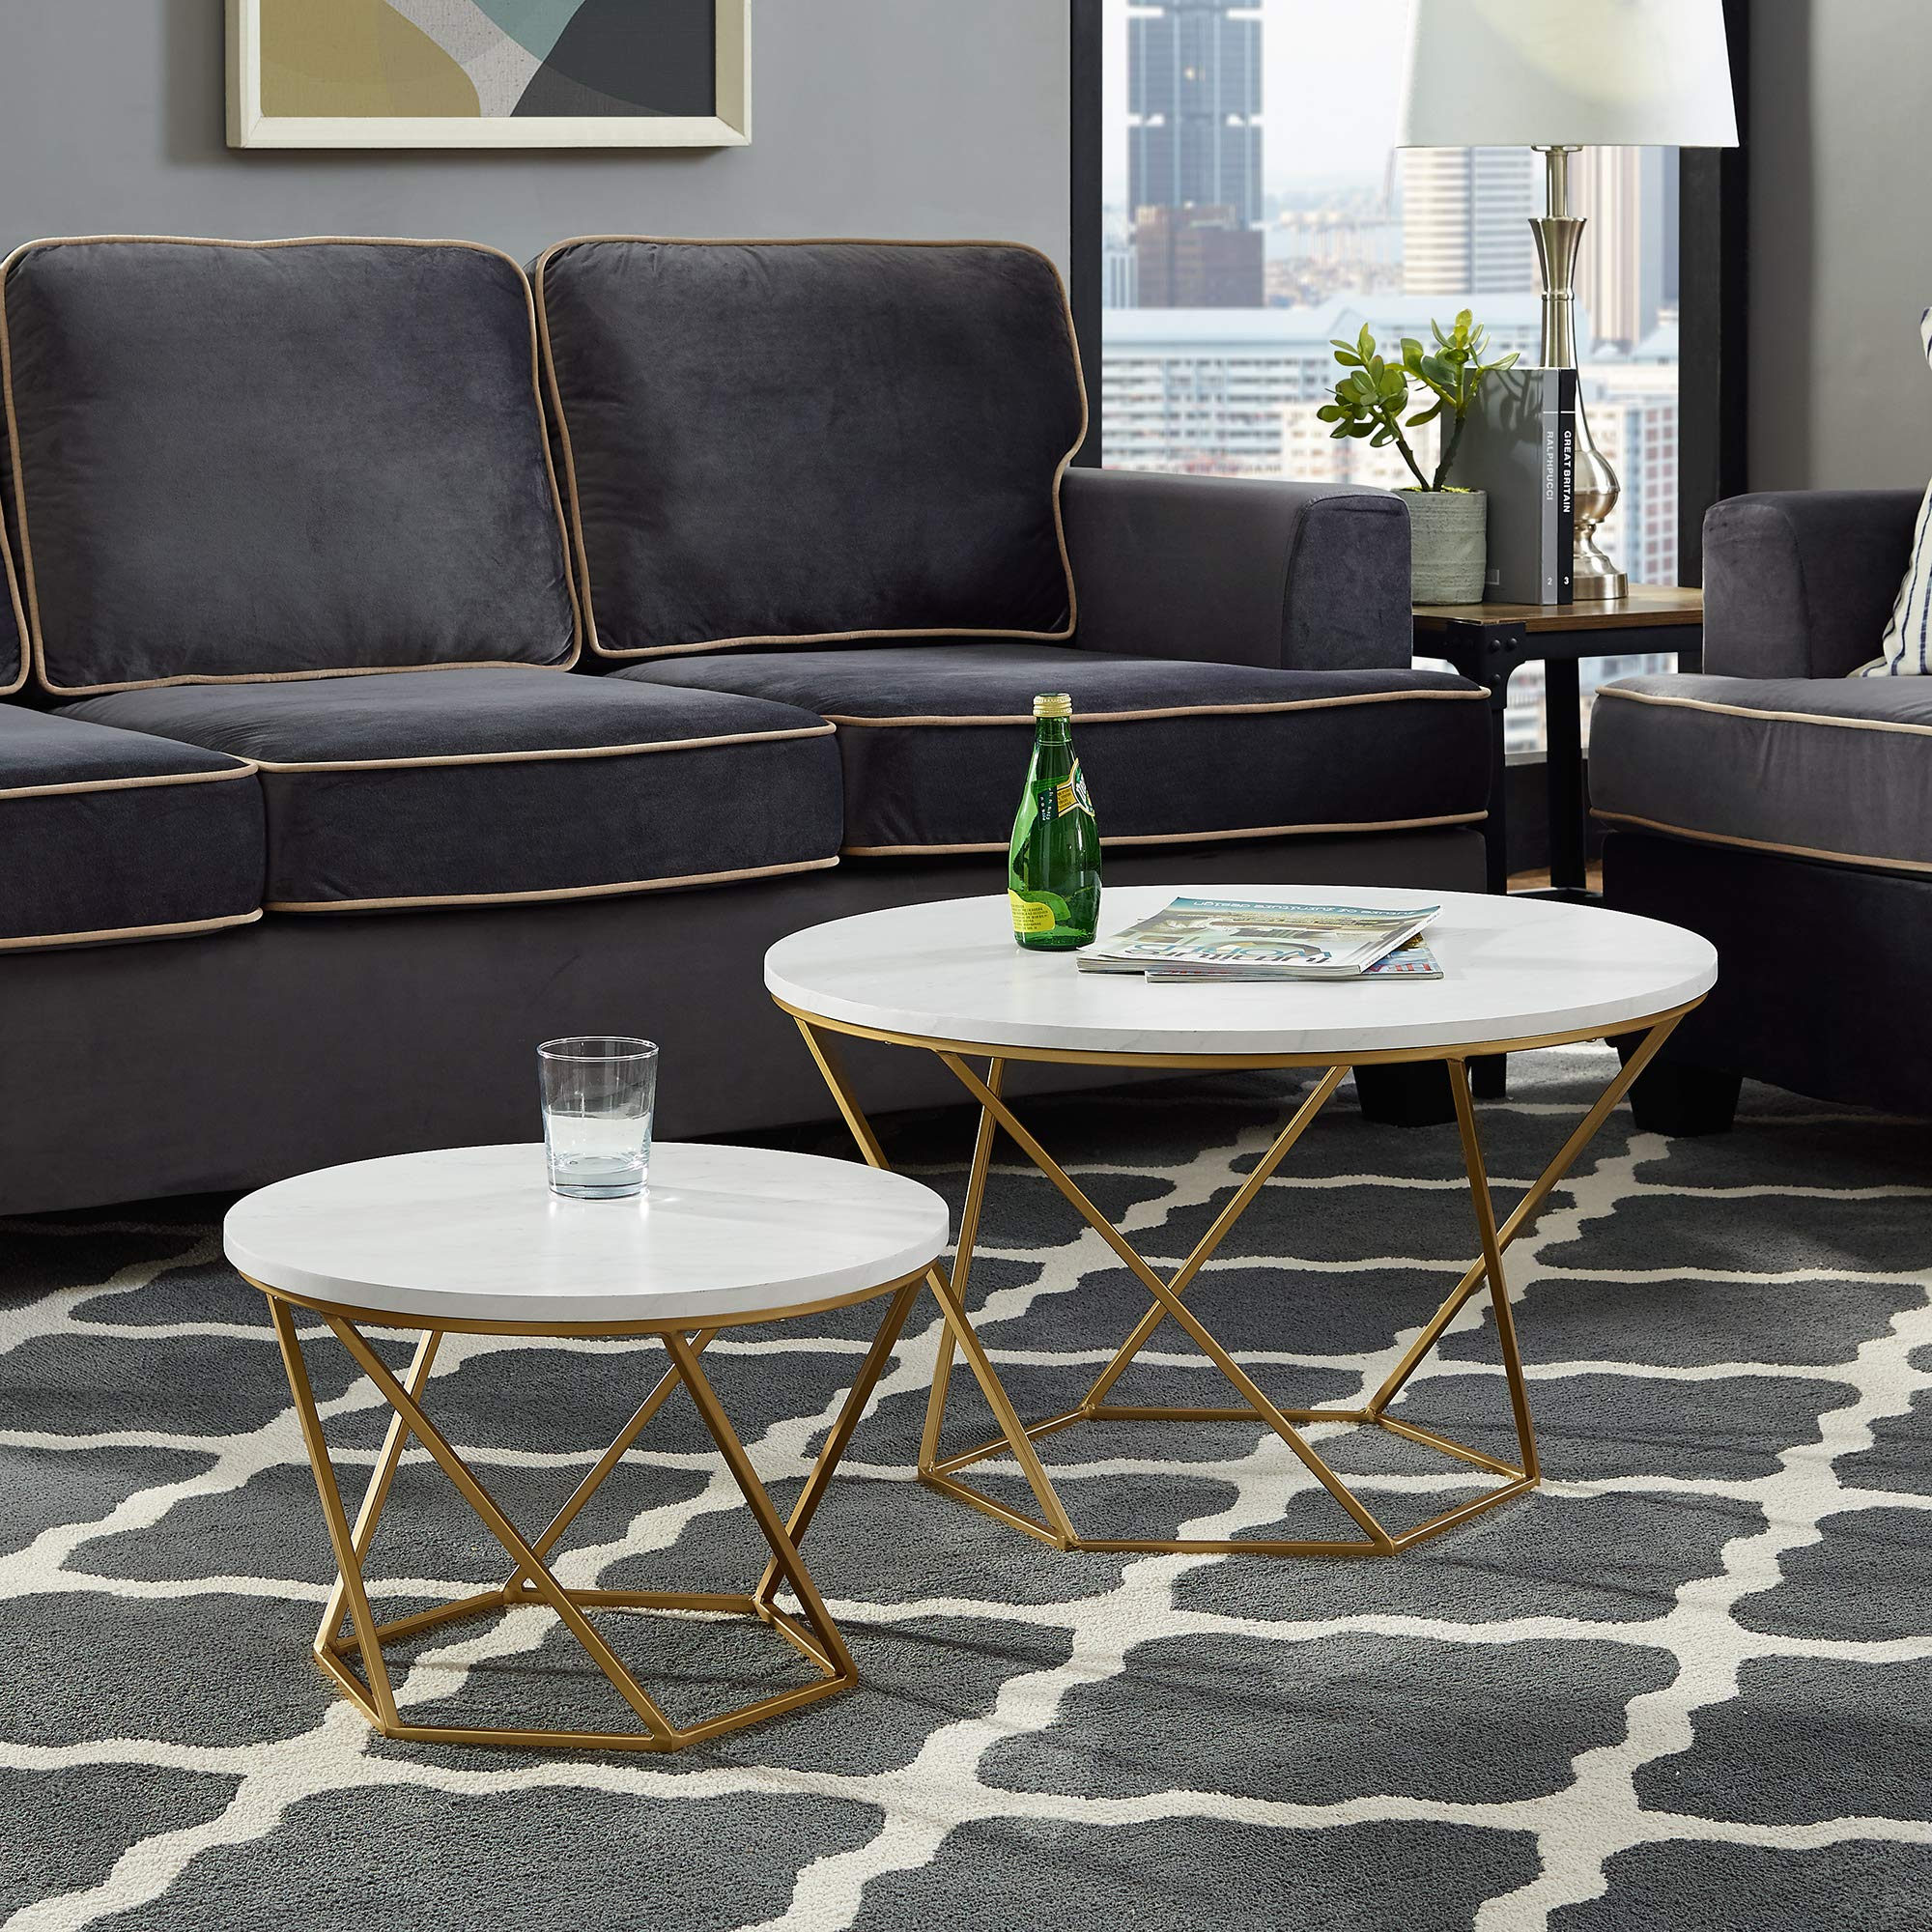 New Geometric Nesting Coffee Tables in Faux Marble Finish with Gold Frame by Home Accent Furnishings